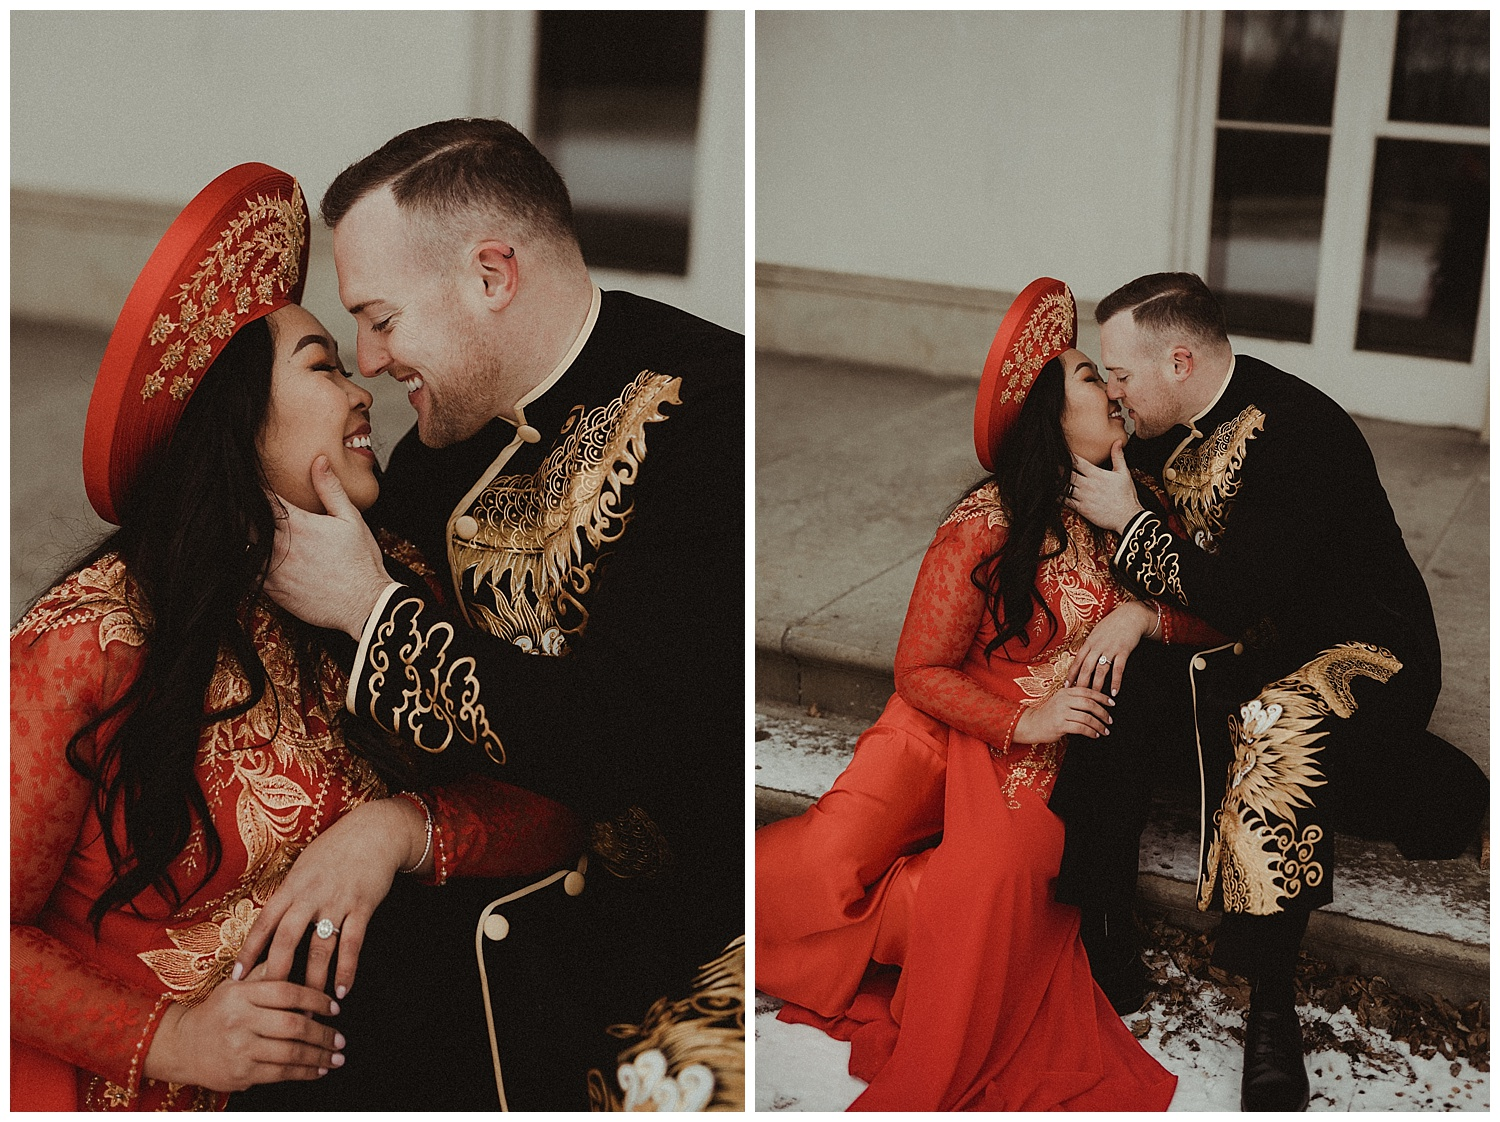 Katie Marie Photography | Hamilton Ontario Wedding Photographer | Hamilton Engagement Session | HamOnt | Vietnamese Engagement Session | Traditional Outfit Engagement Session | Dundurn Castle_0020.jpg